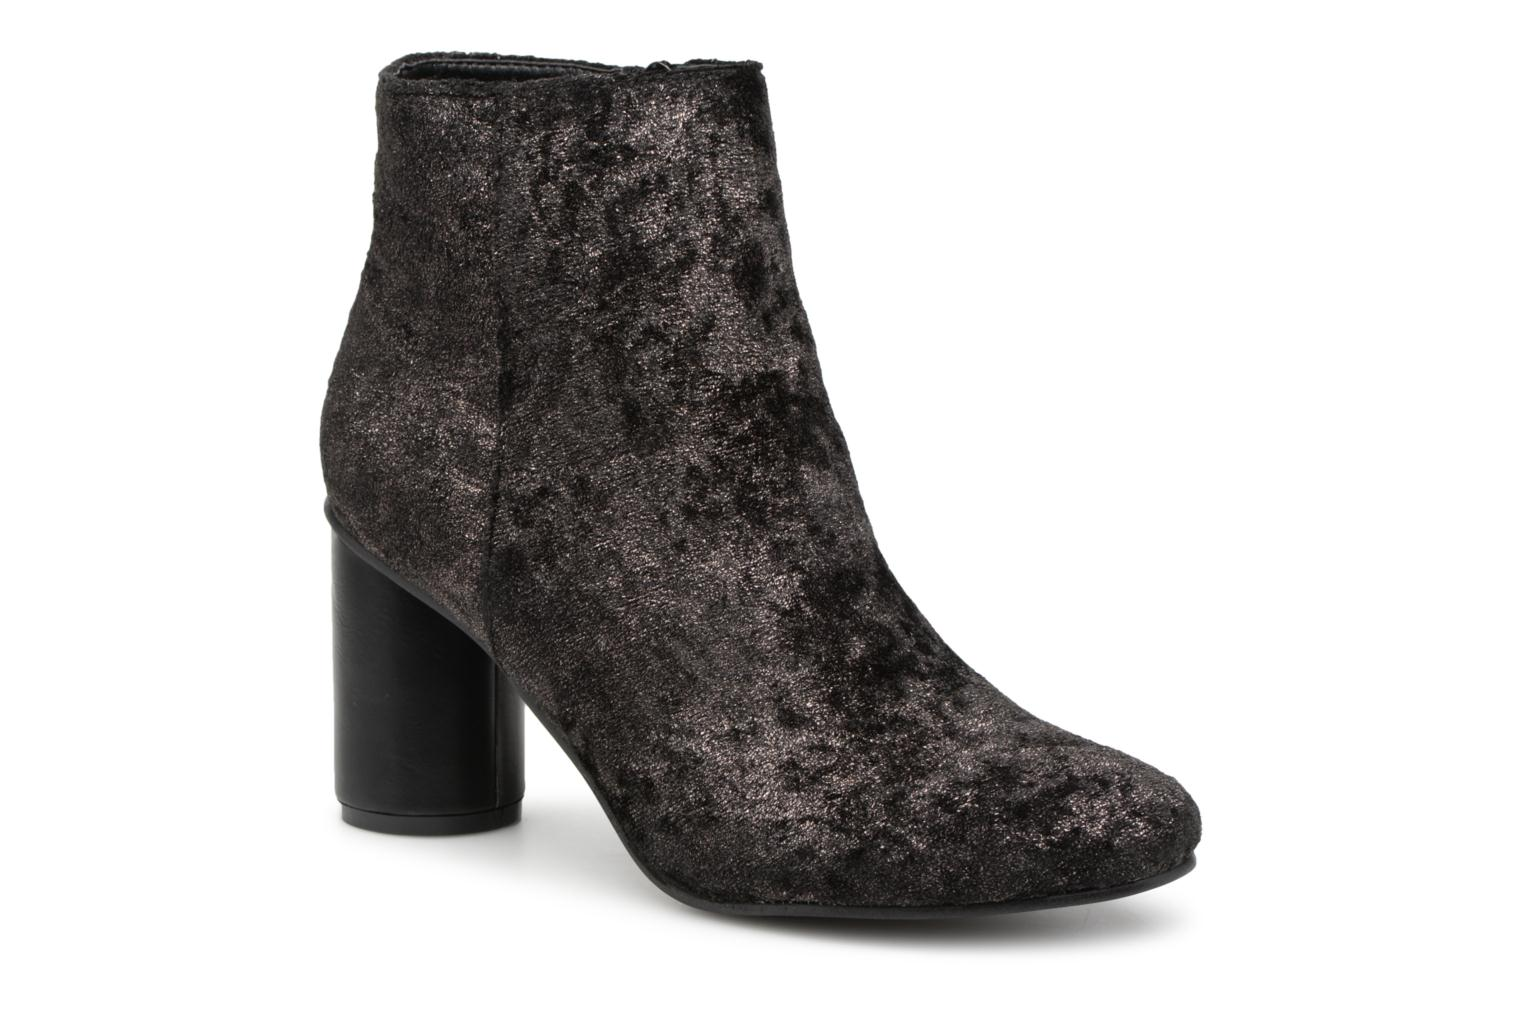 Vanessa Wu Bottines Anthracite (Gris) - Bottines et boots chez Sarenza (340610)